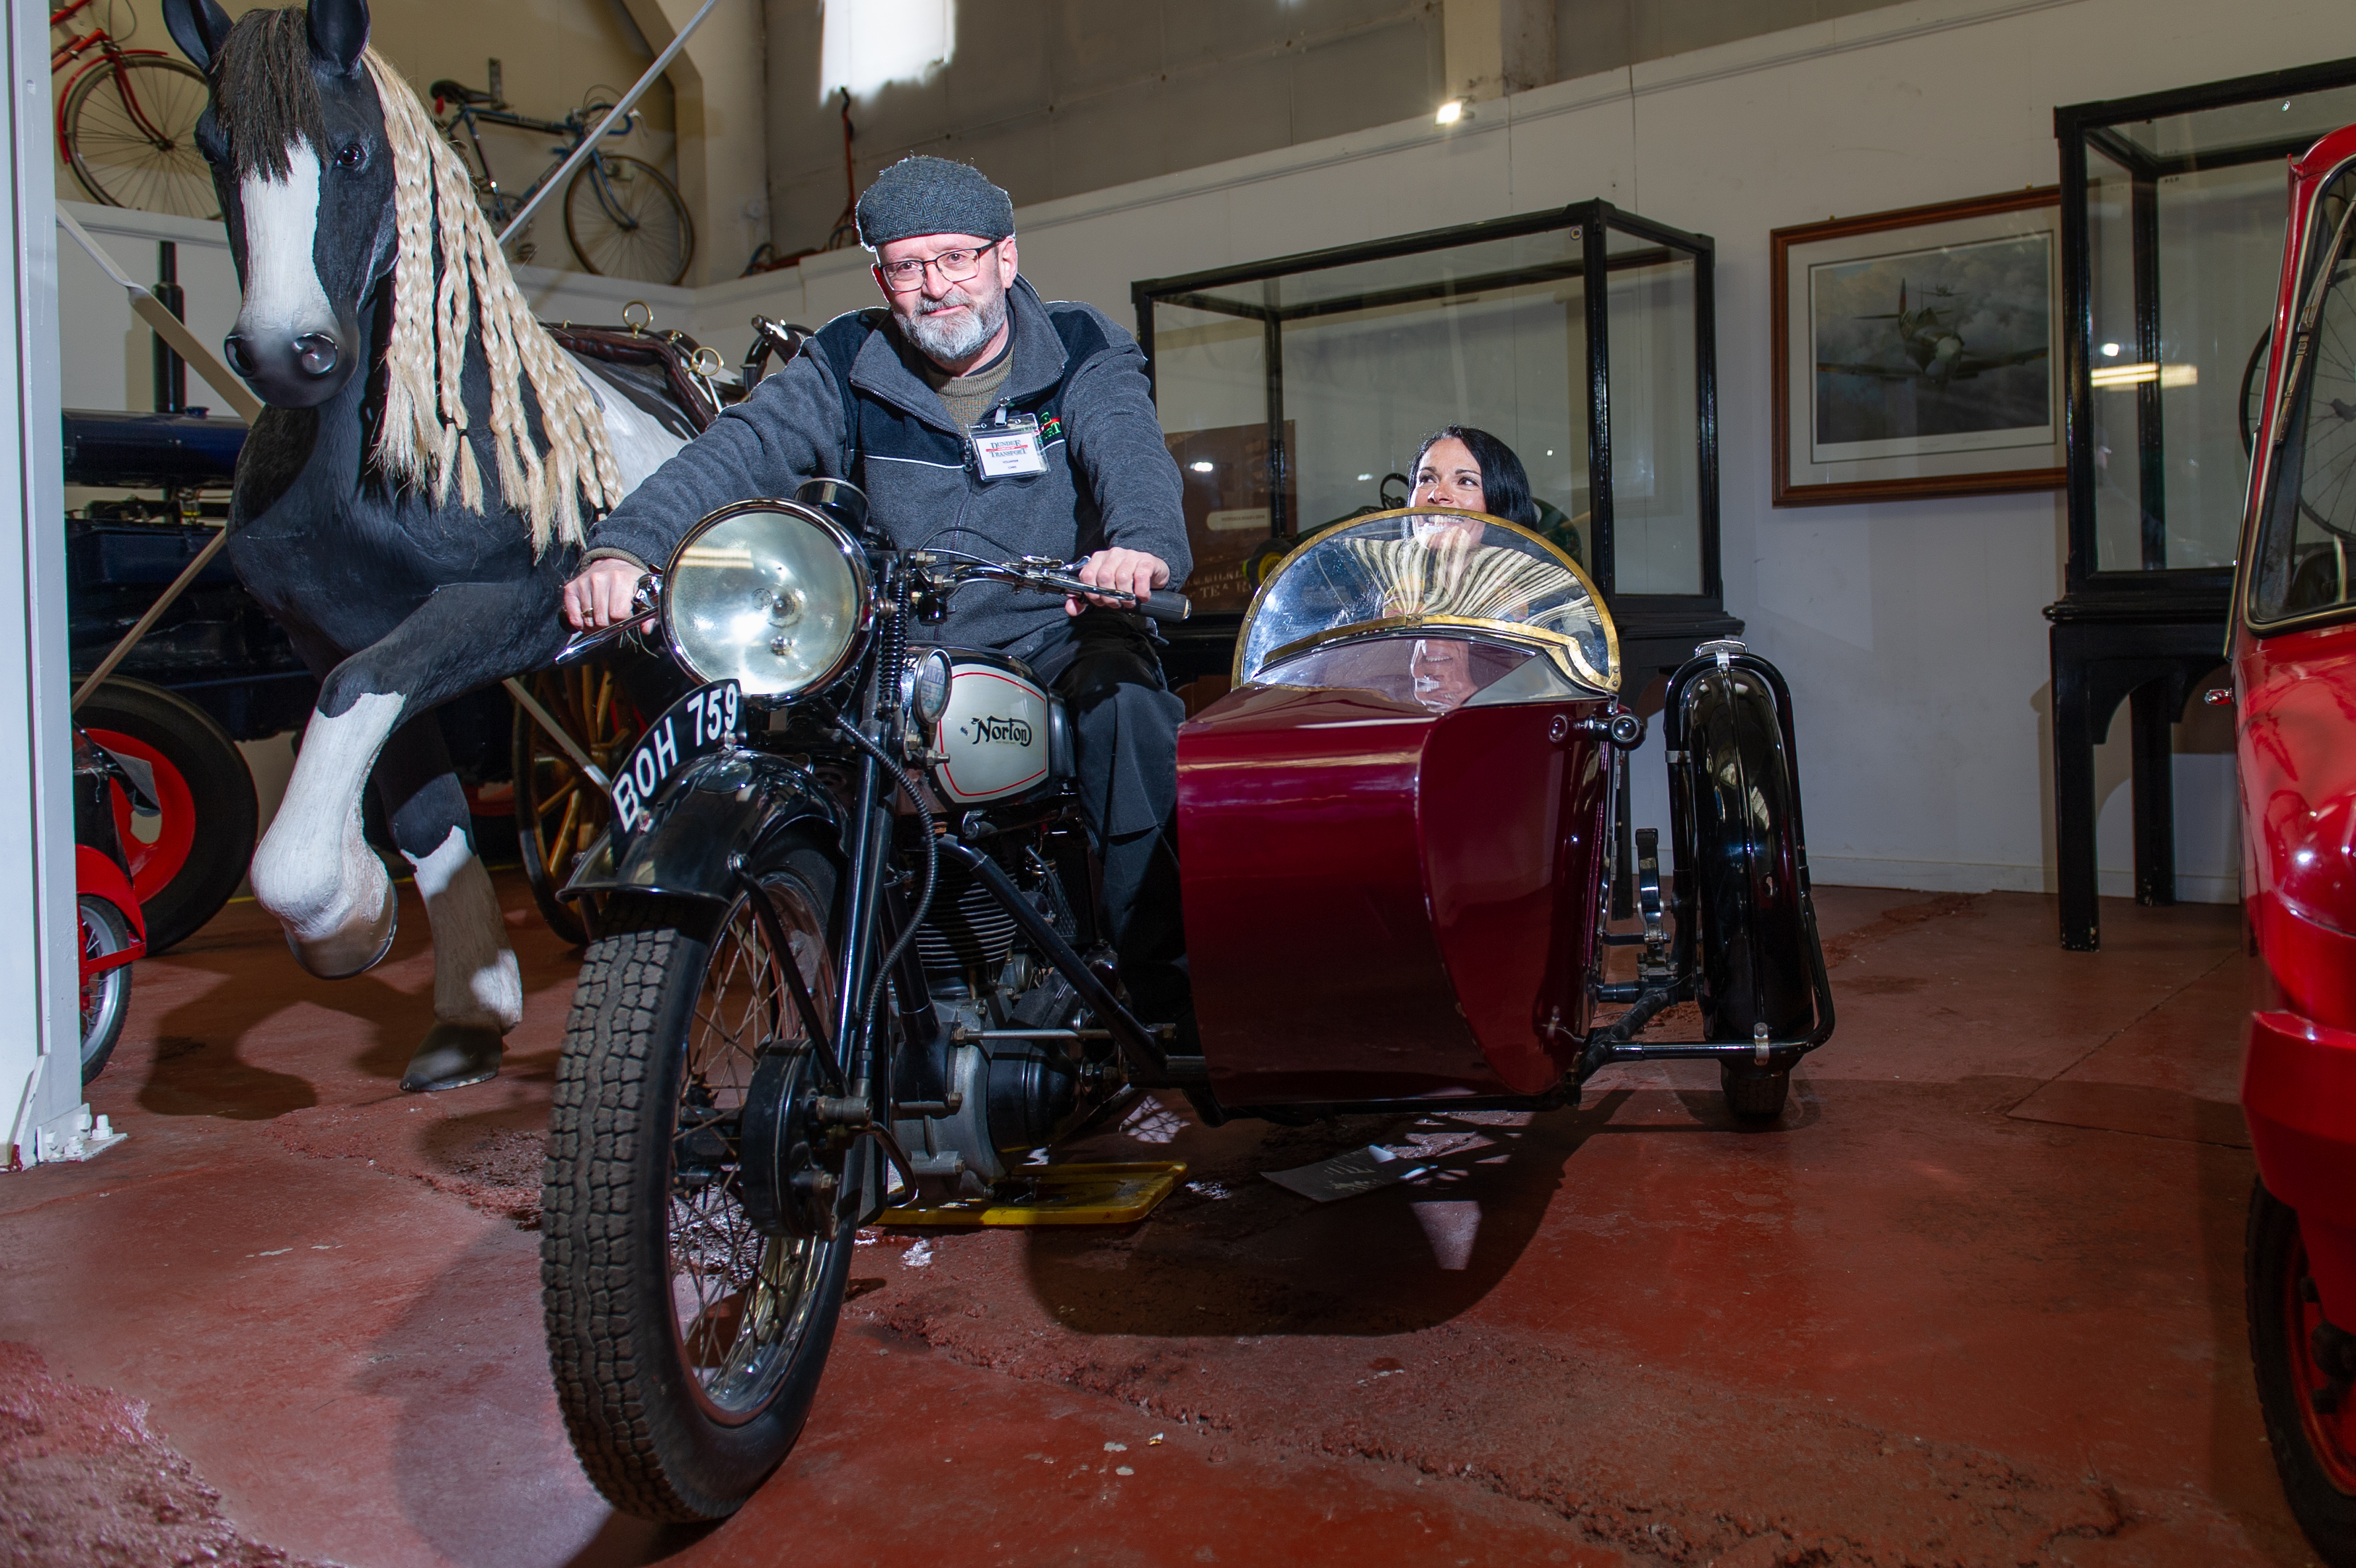 Chris Rose and Gayle on a Norton sidecar combo at Dundee Museum of Transport.